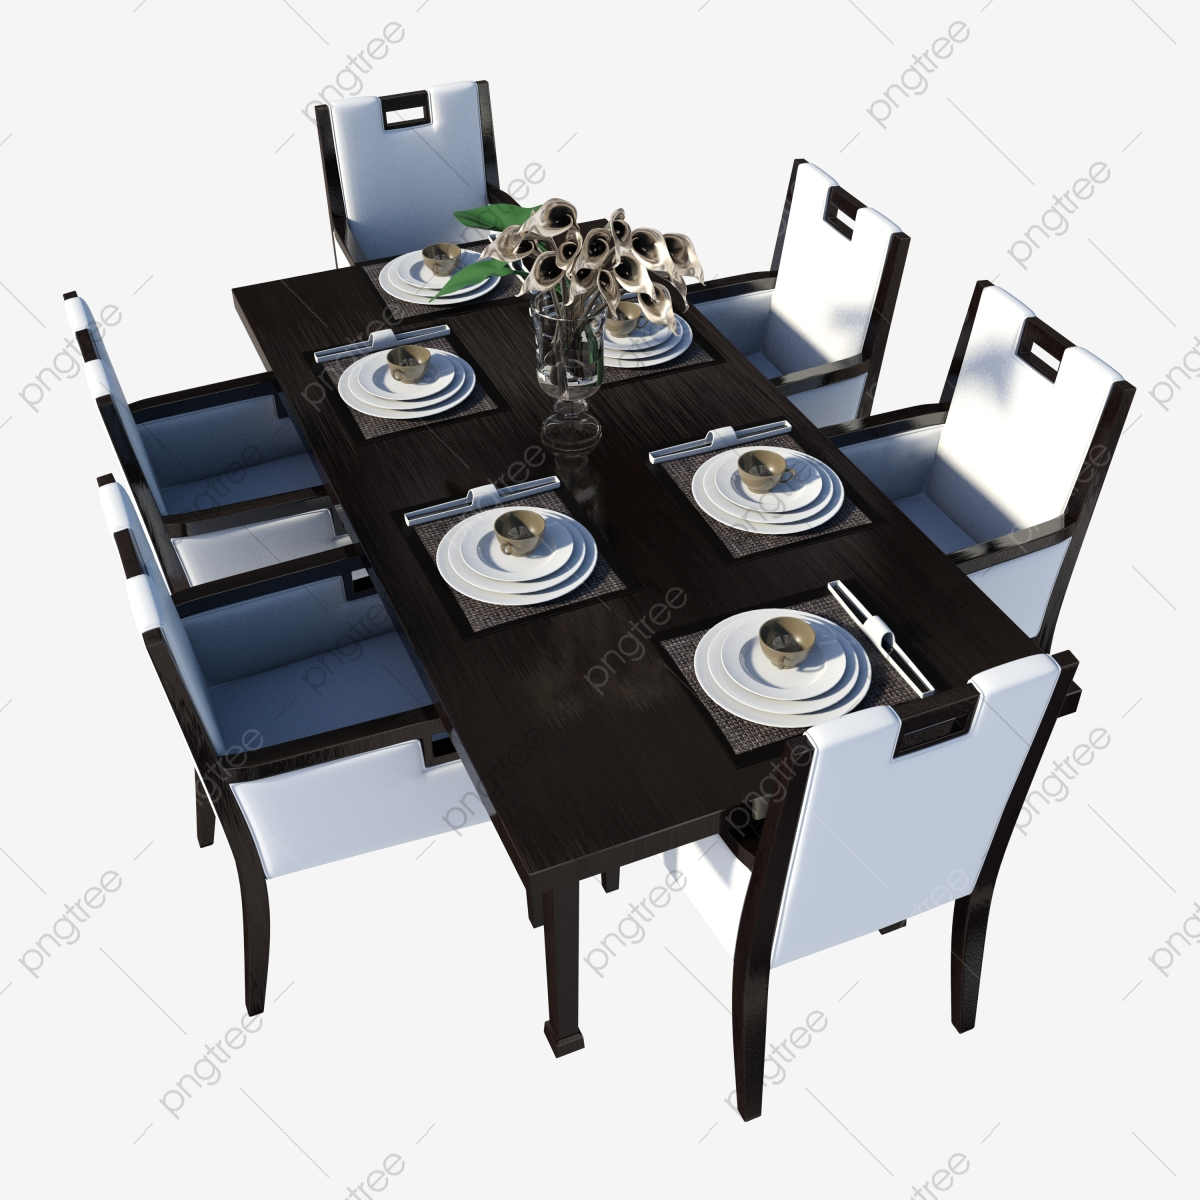 Modern Solid Wood Dining Table Chair, Dining Table, Dining Chair